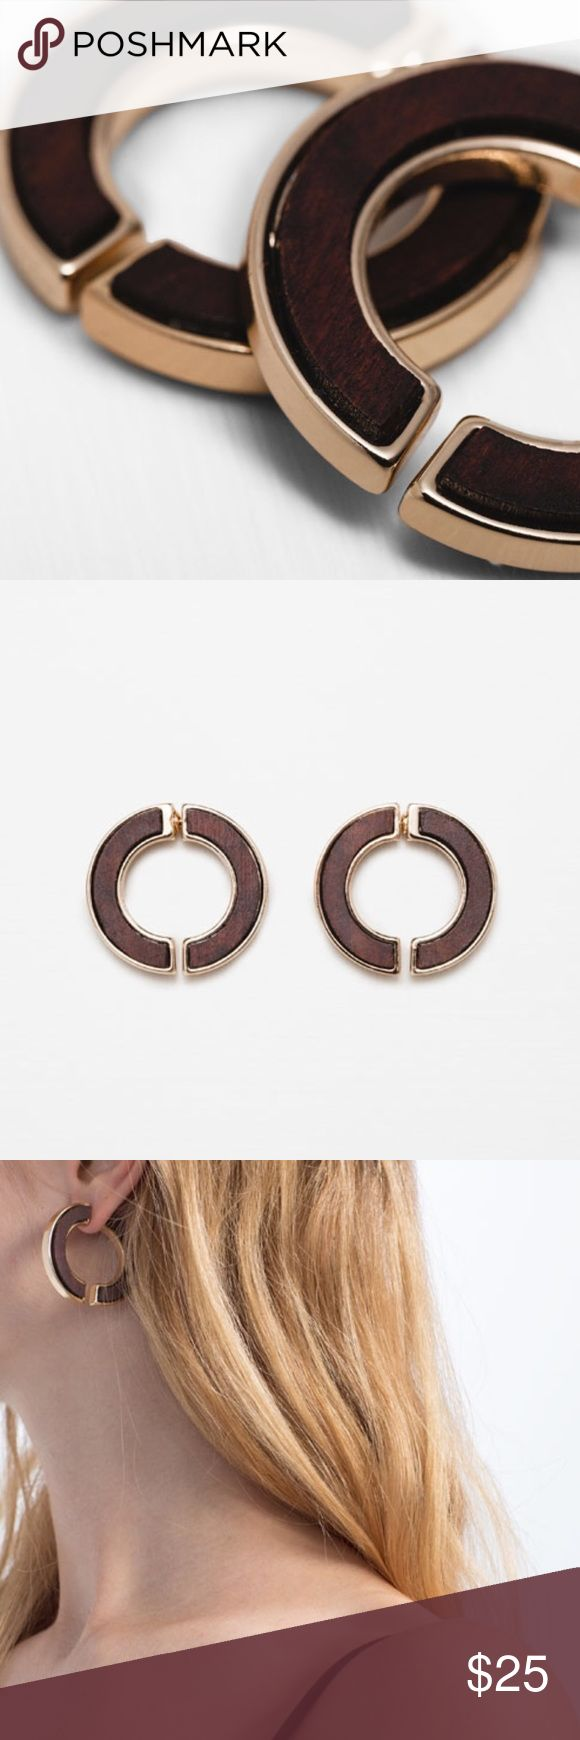 ZARA Wooden Earrings New with tags attached in original packaging. Never worn. Zara Jewelry Earrings